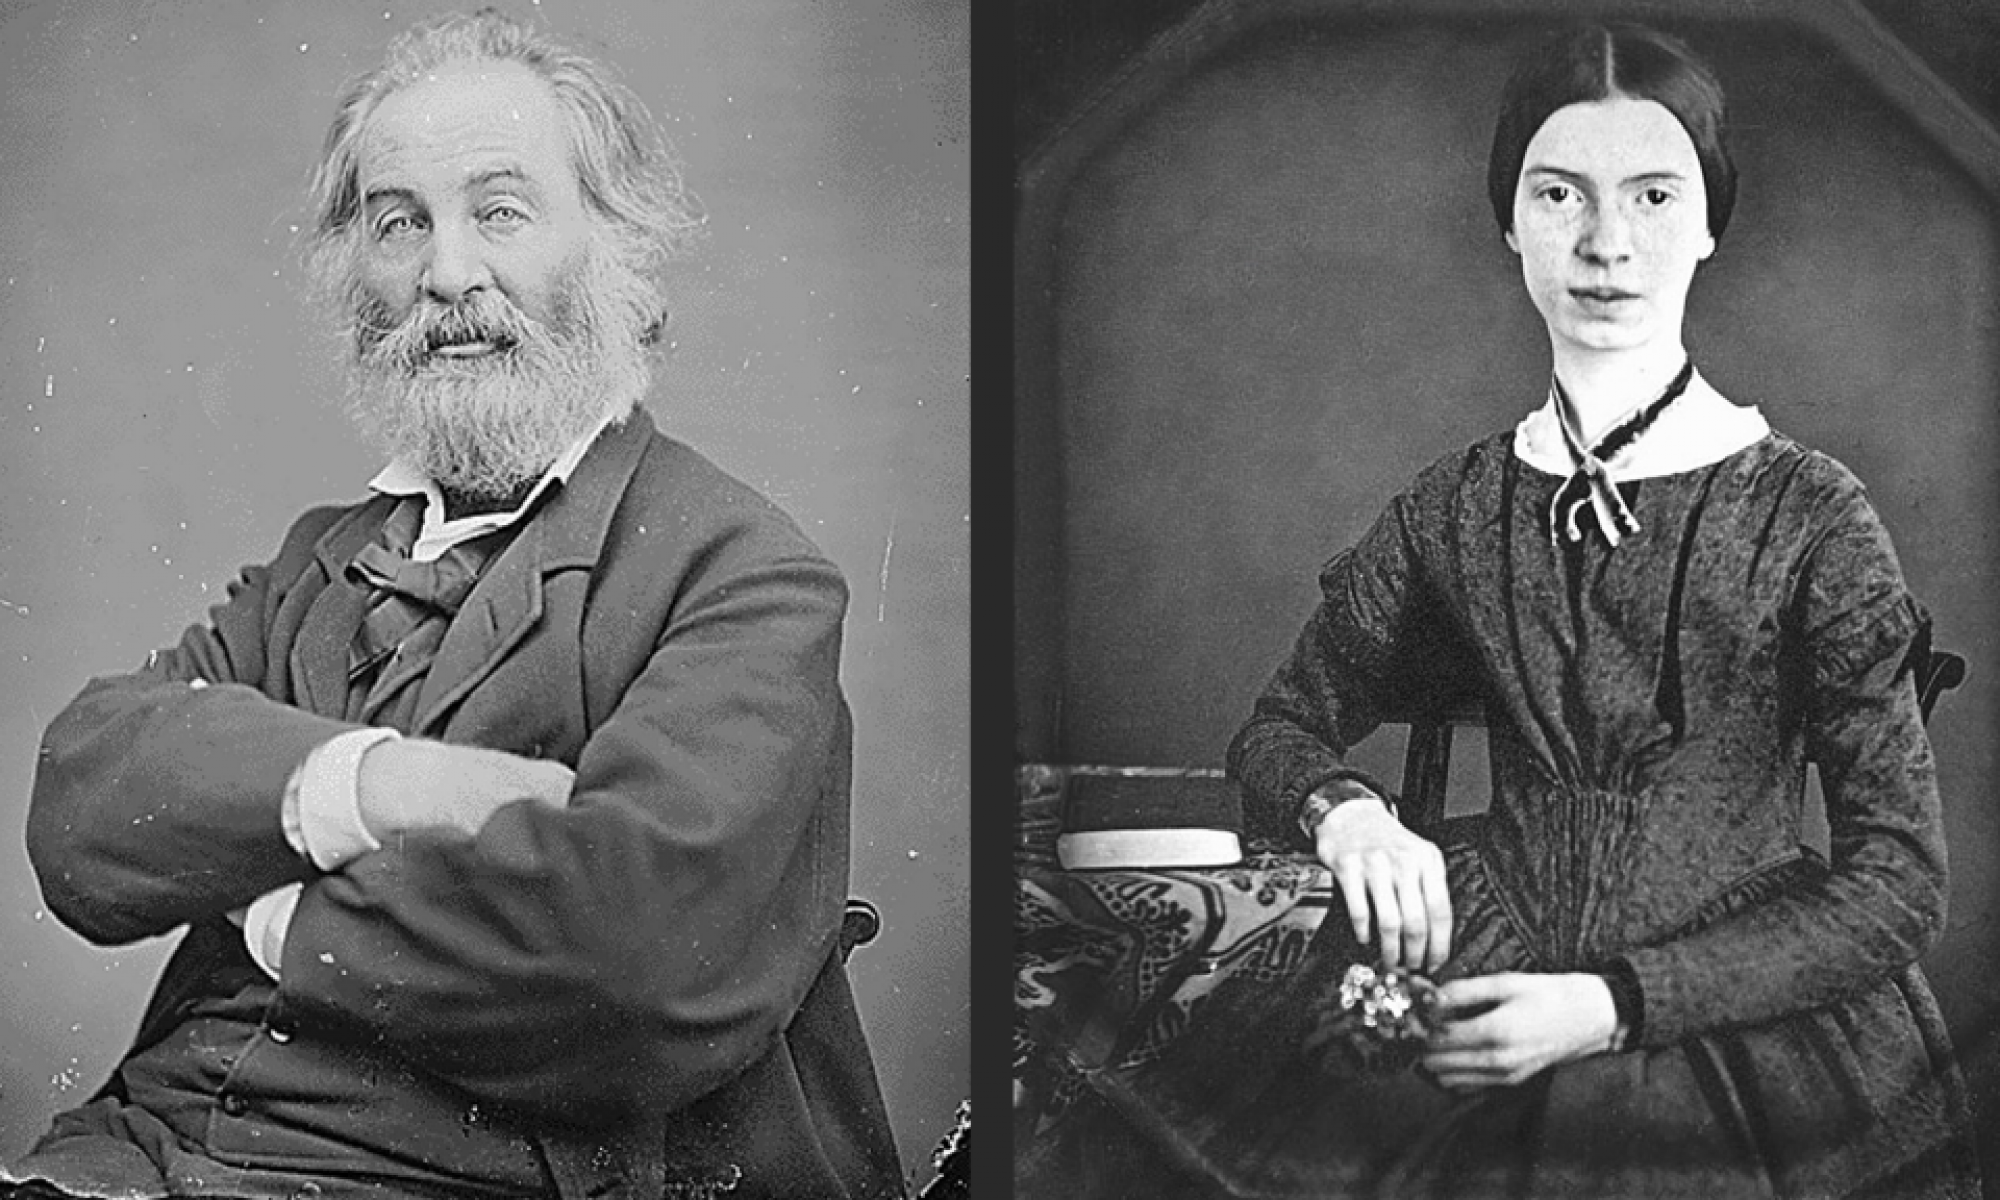 Whitman and Dickinson